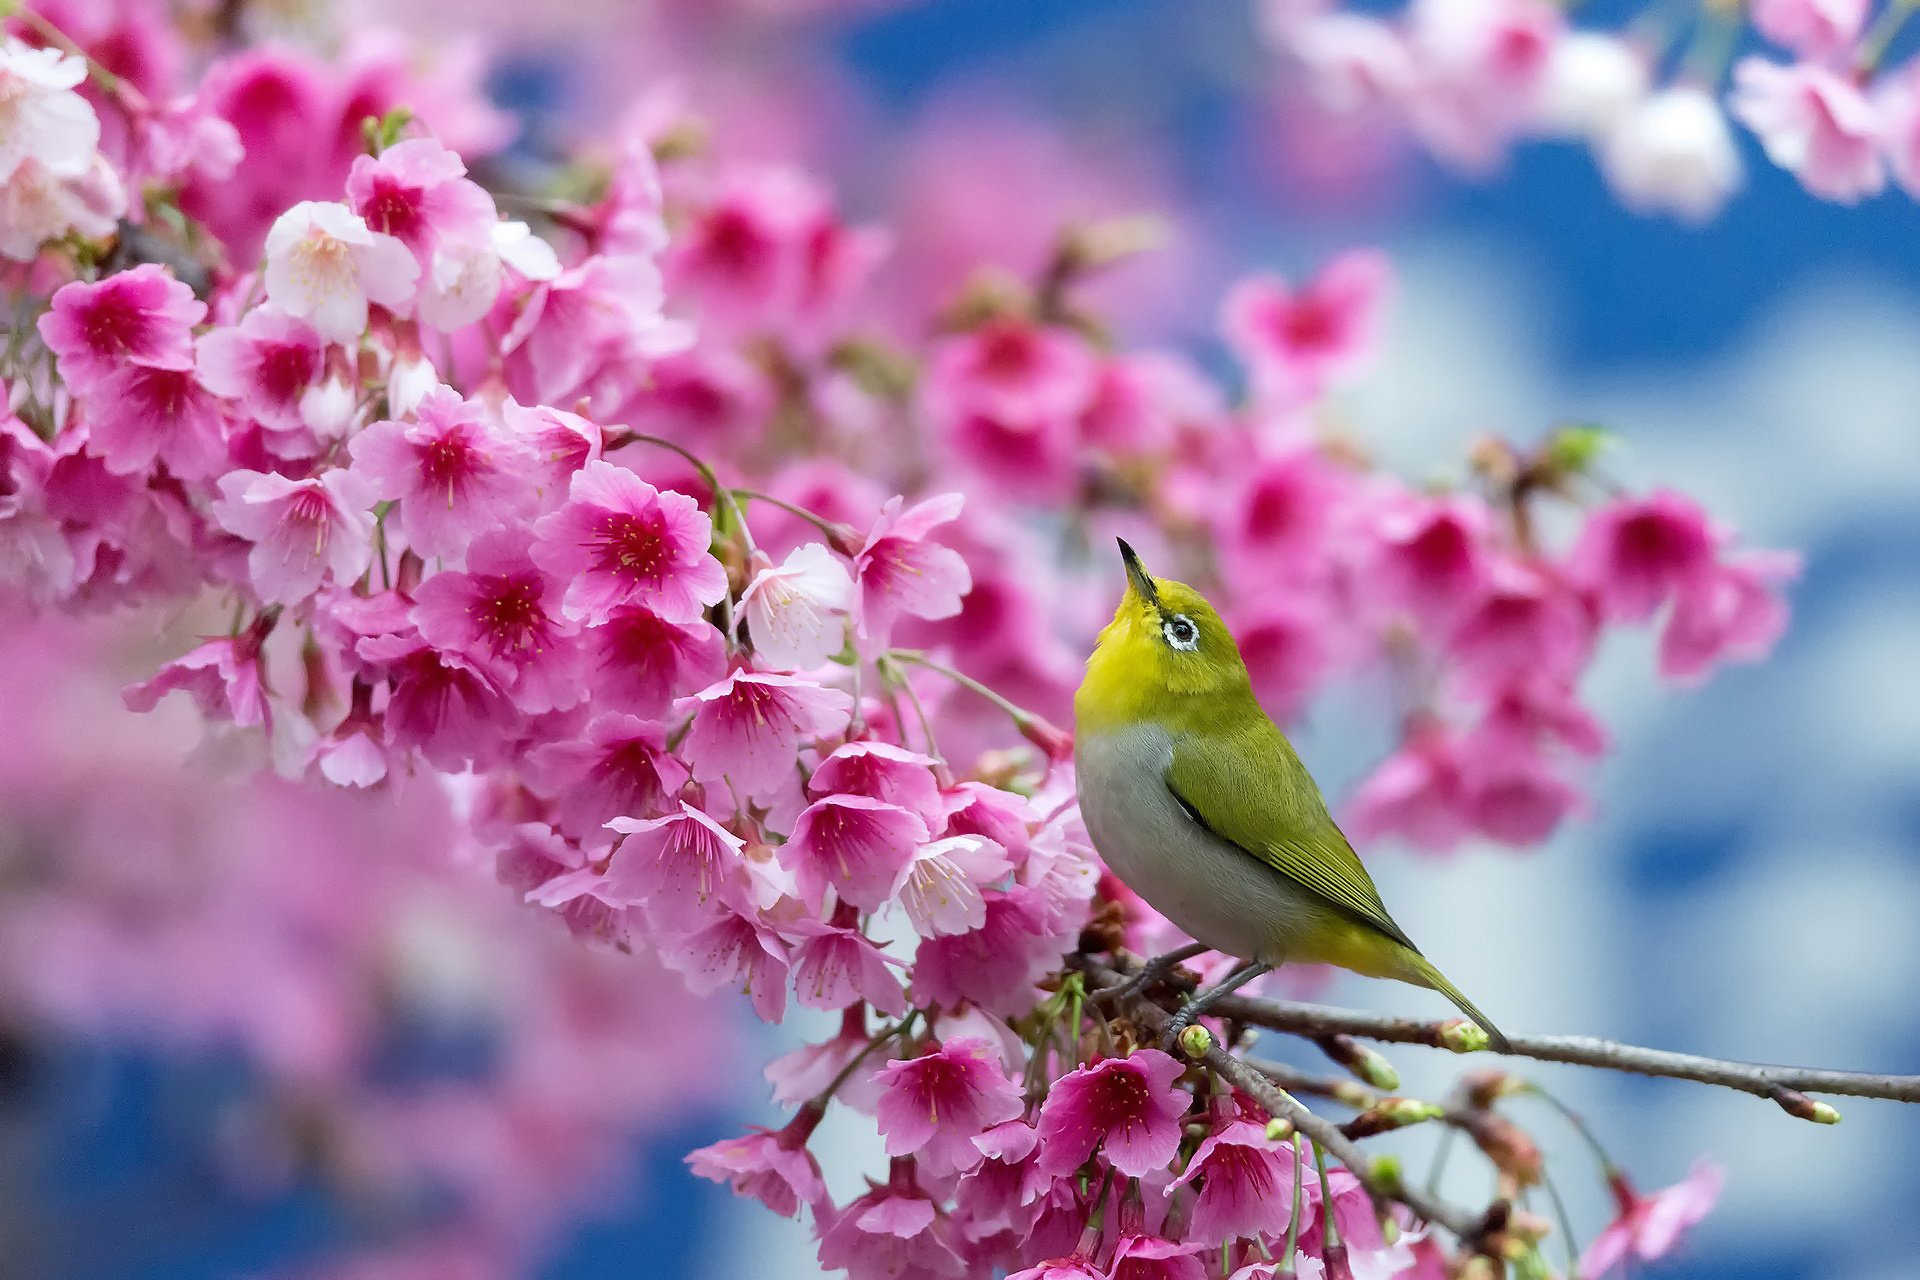 wallpaper.wiki-birds-and-blooms-desktop-background-pic-wpb0014858